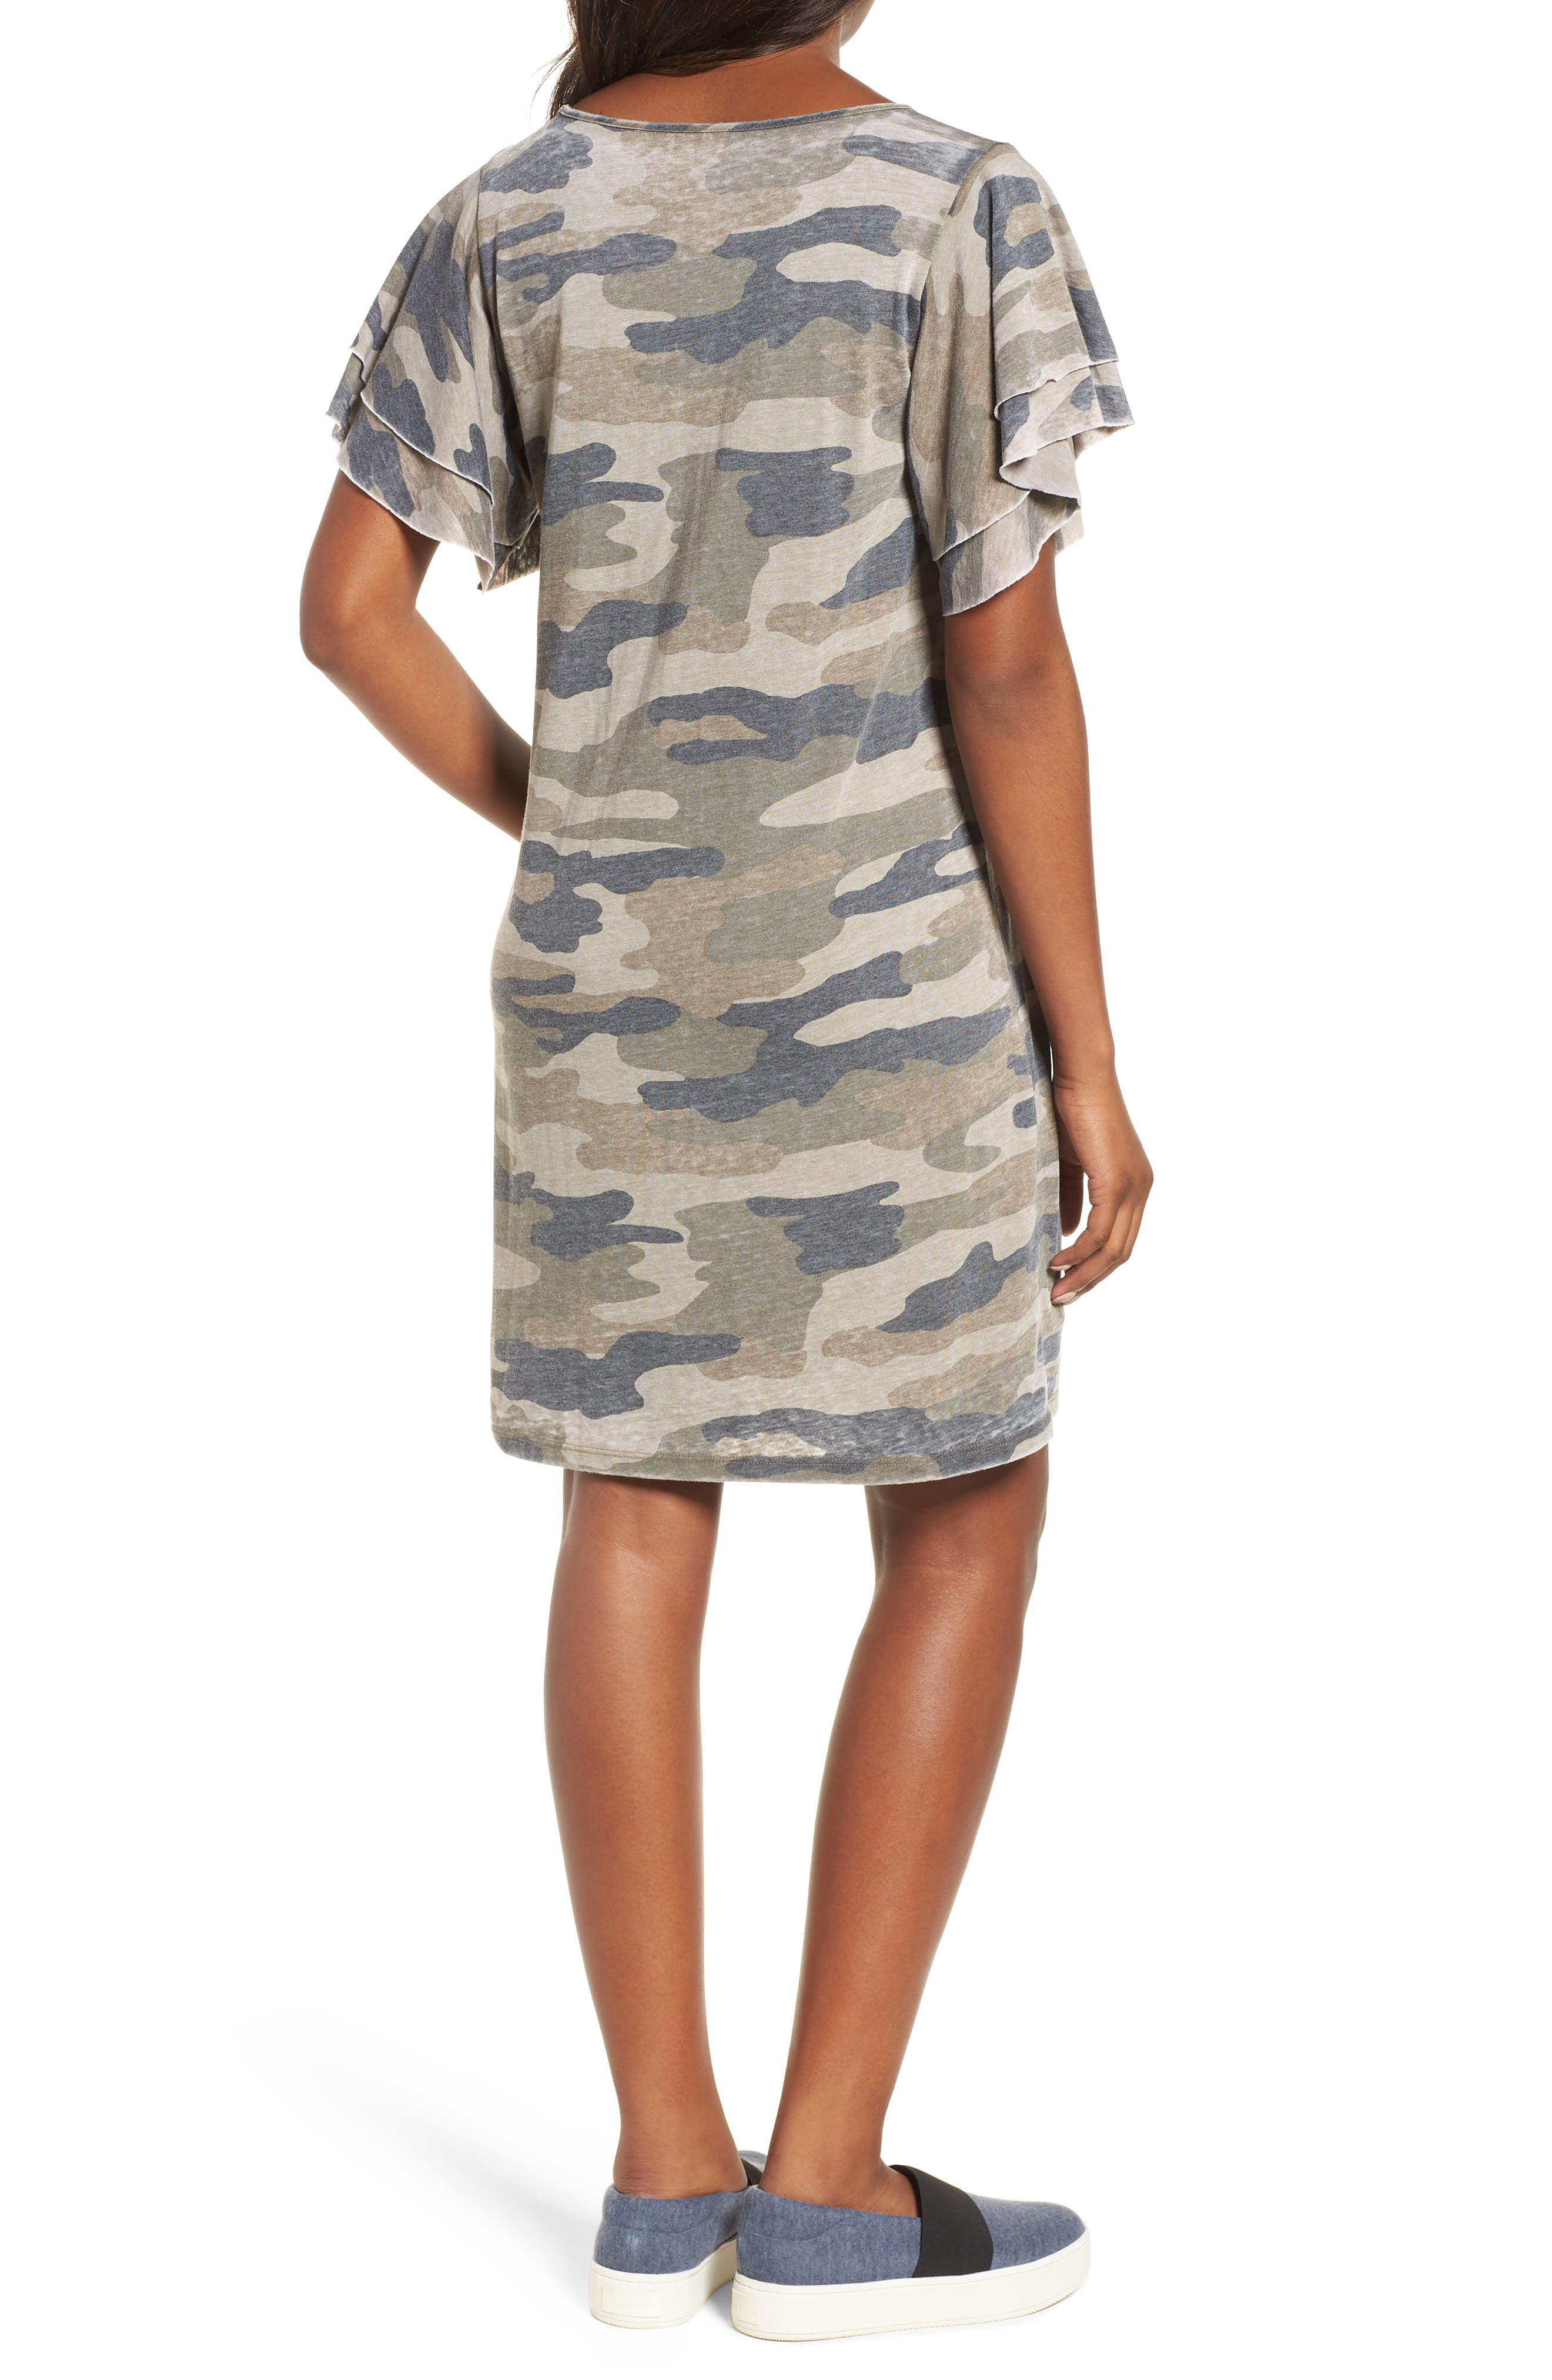 Camo Print Dress,                             Alternate thumbnail 2, color,                             310